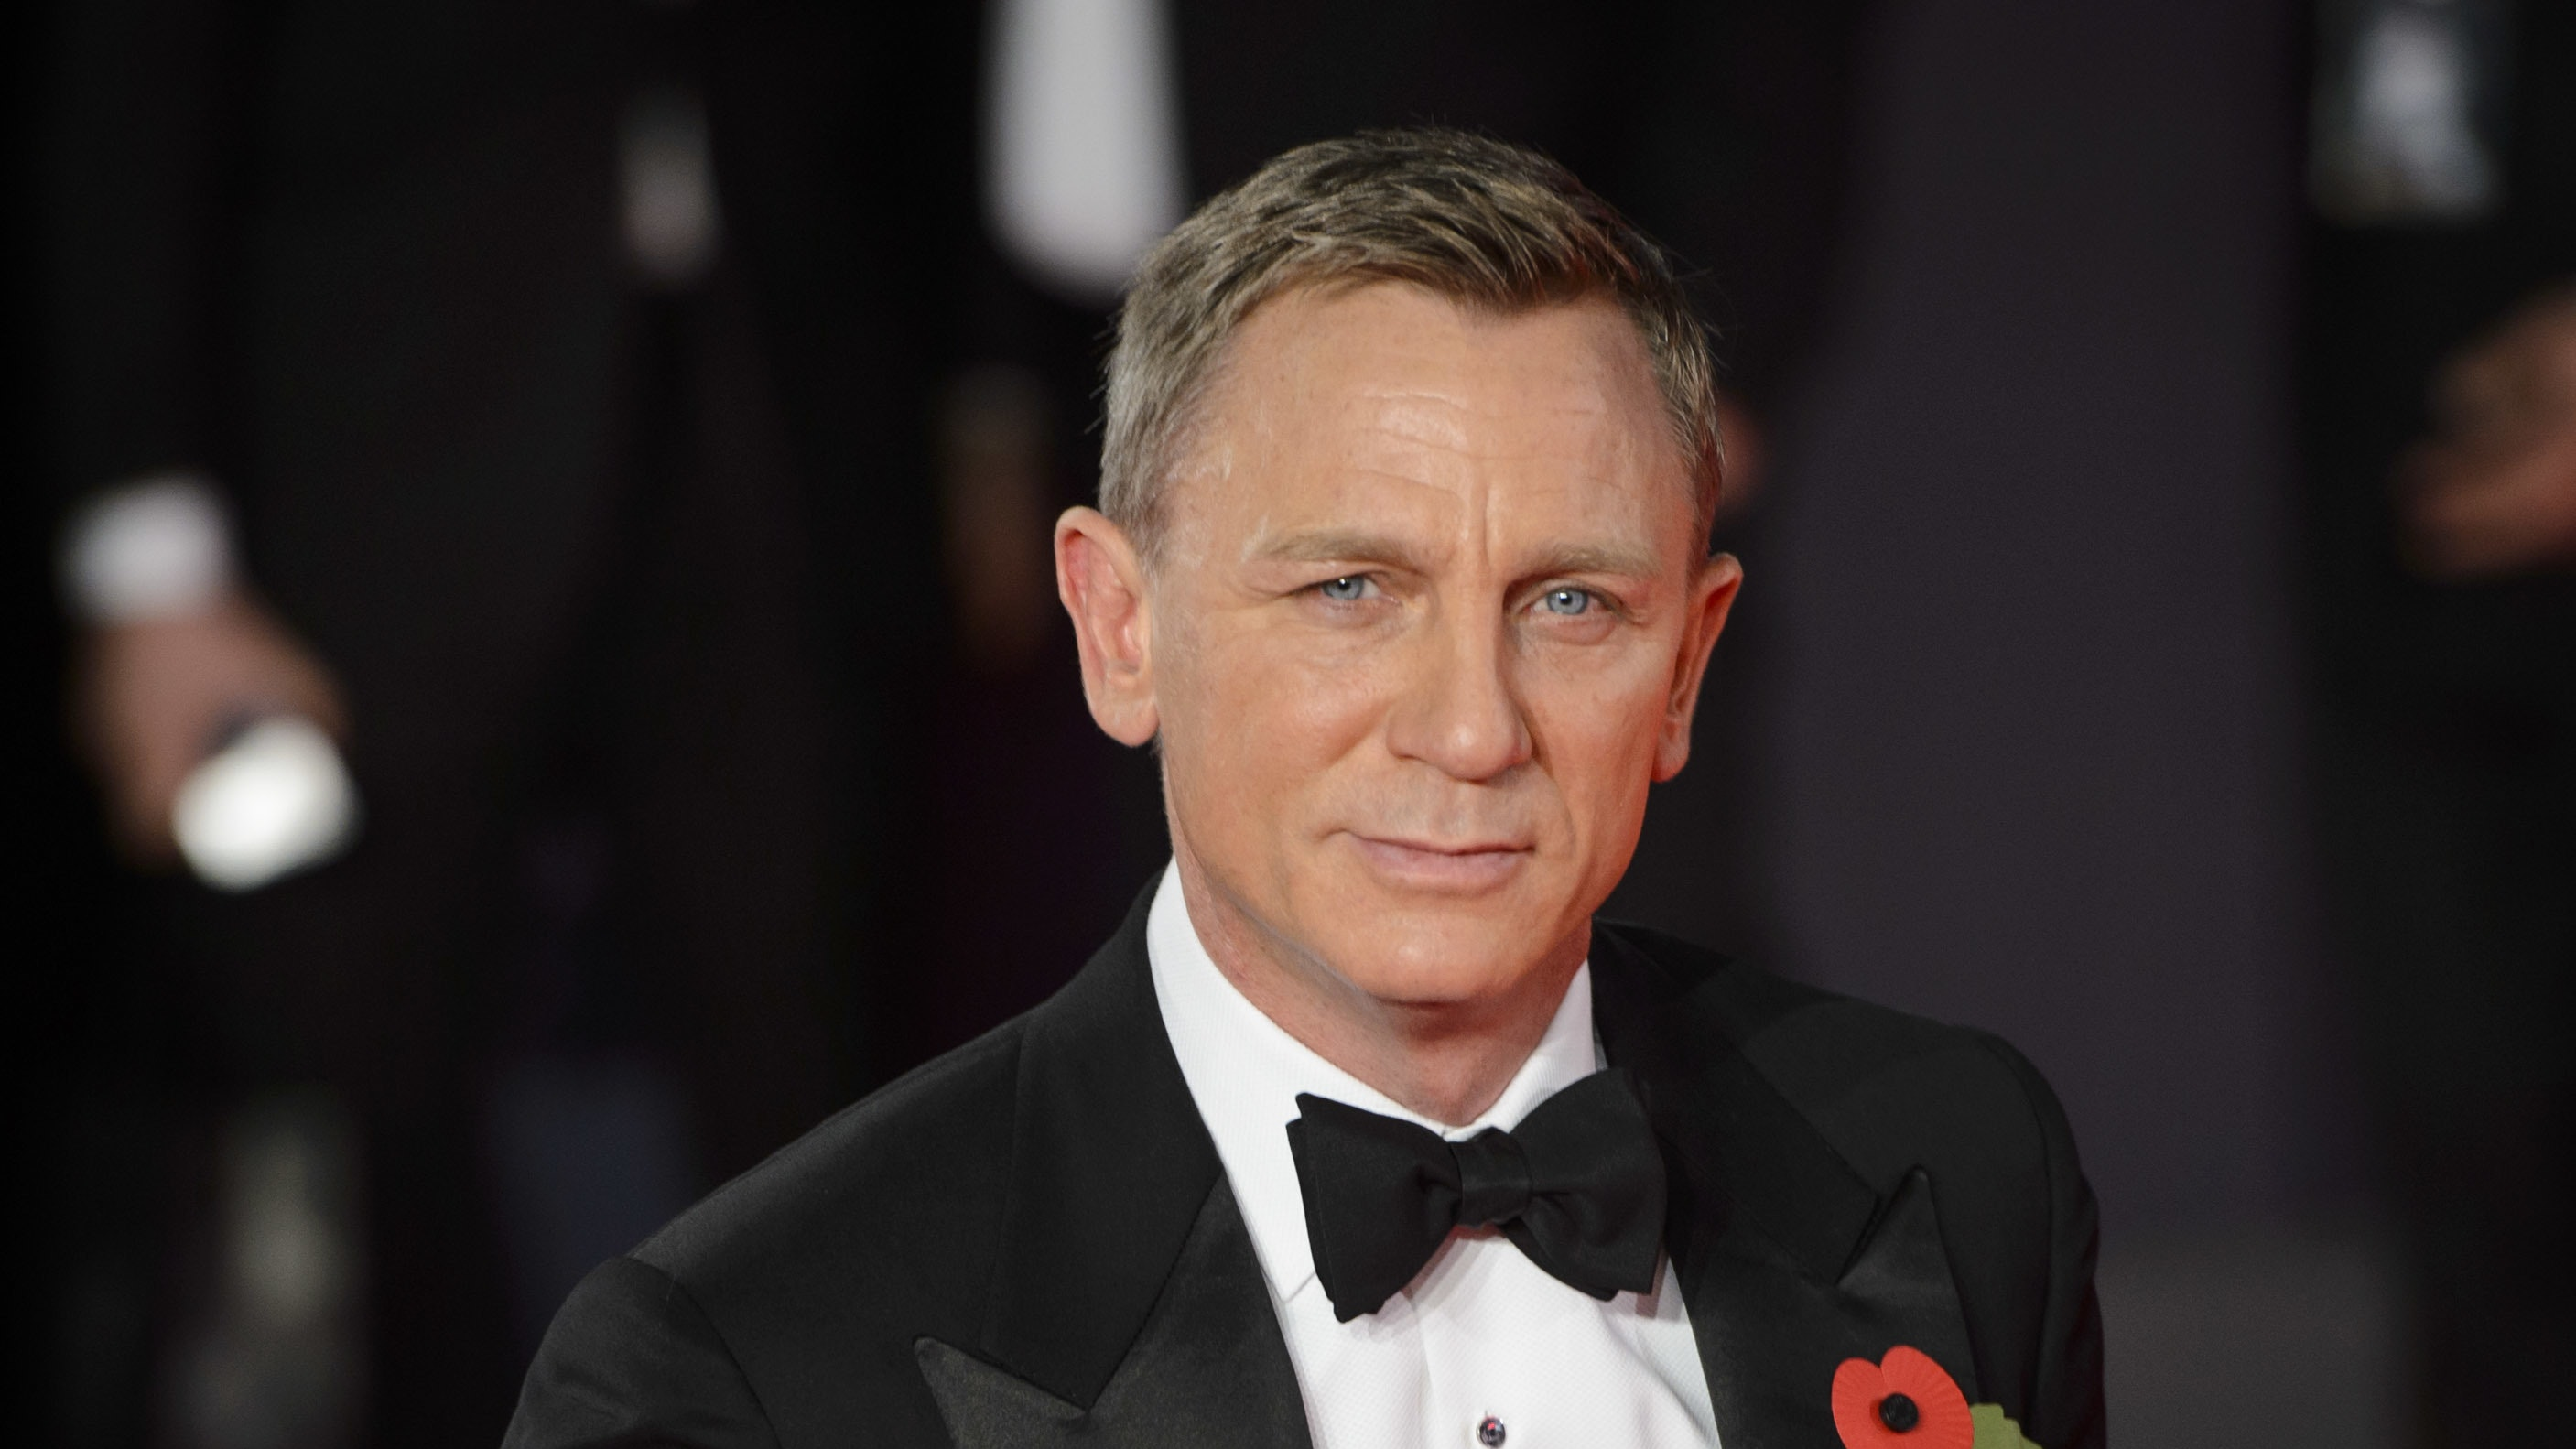 Shatterhand: Next James Bond film's working title revealed